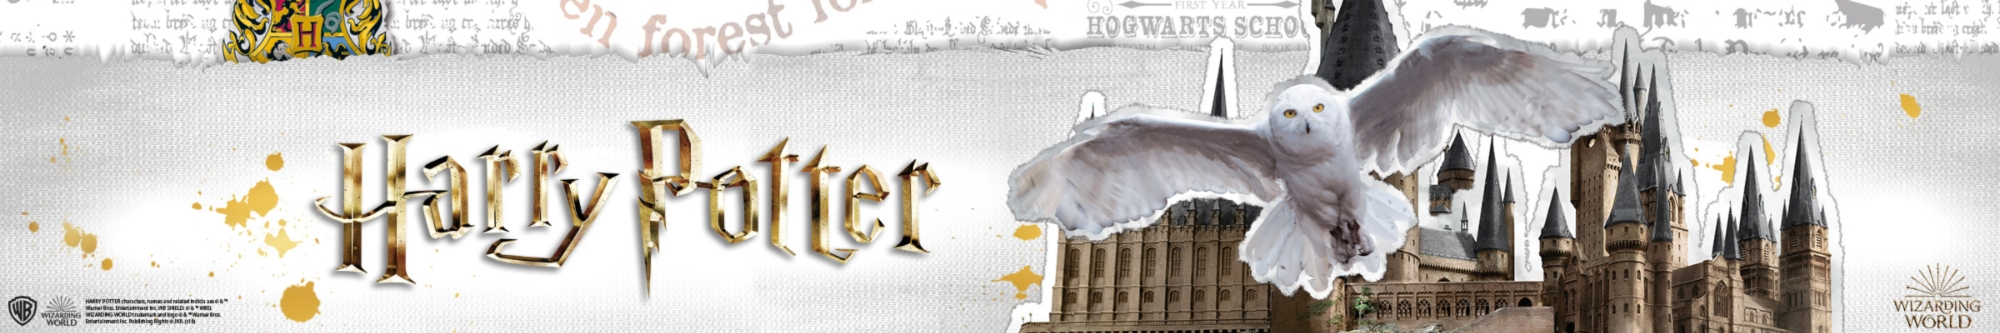 Galerie - Harry Potter